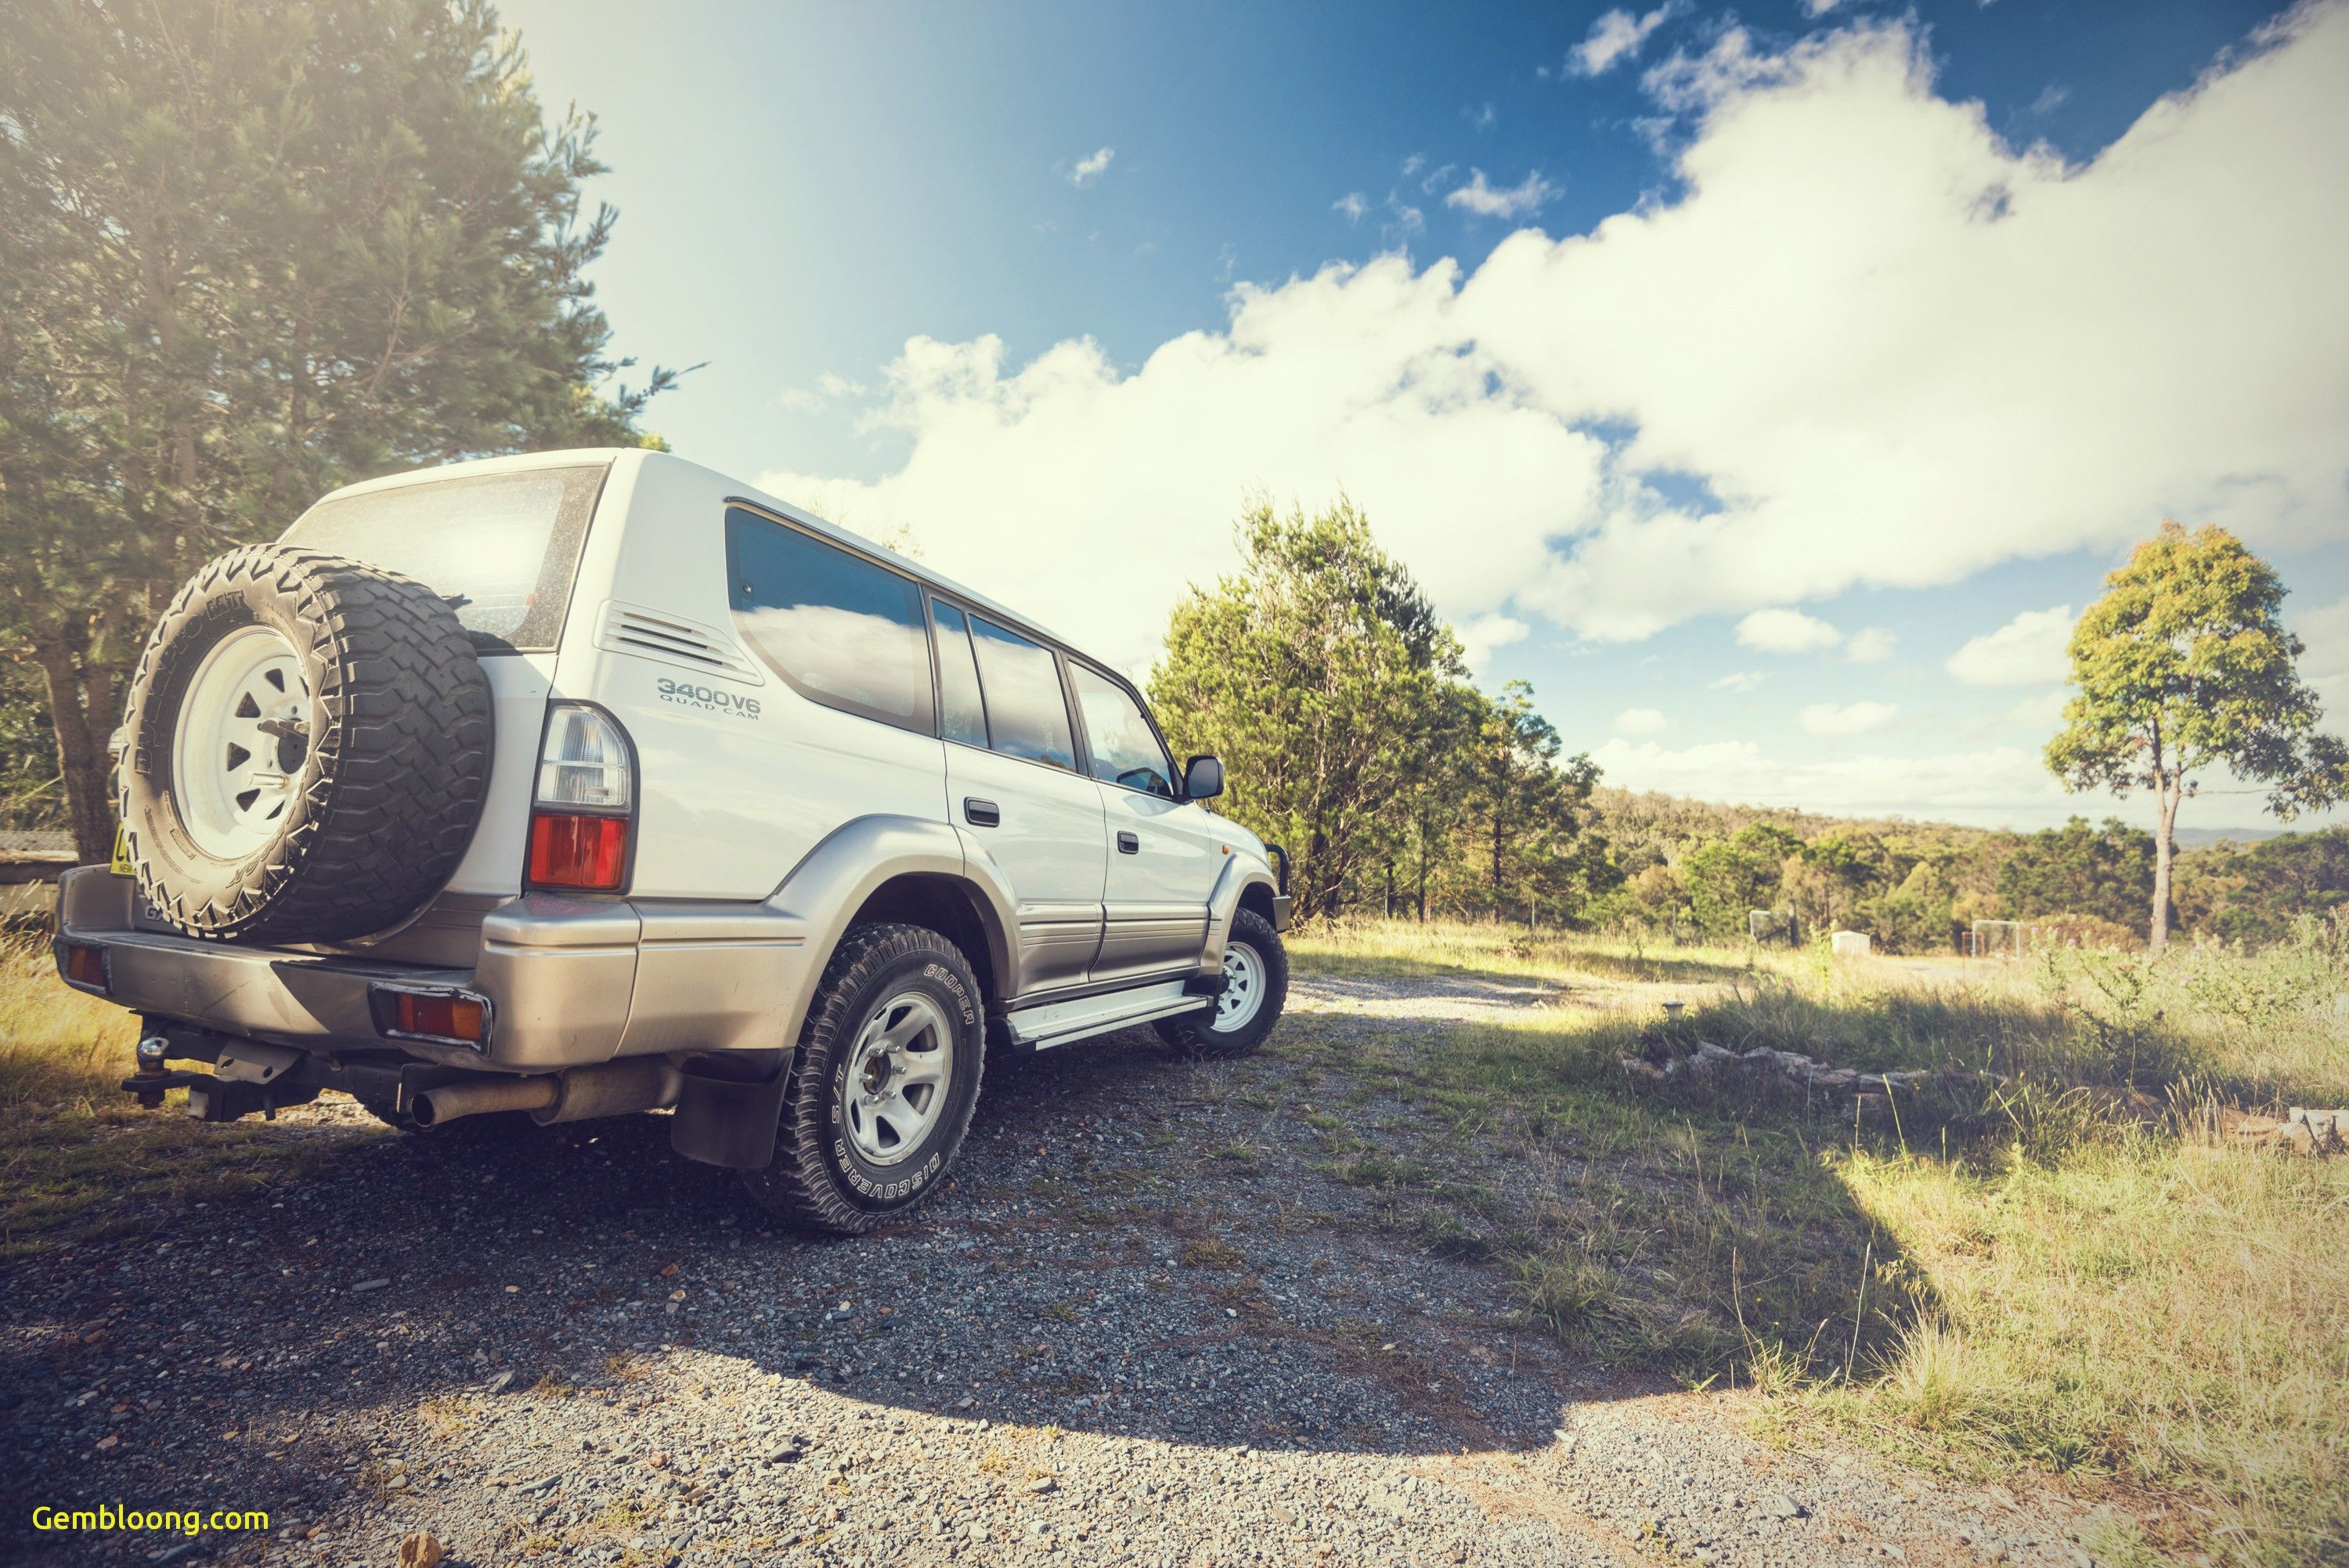 Cars for Sale Near Me 4×4 Inspirational 4wd Cars for Sale Near Me Awesome Cheap 4wd 4×4 for Sale Australia